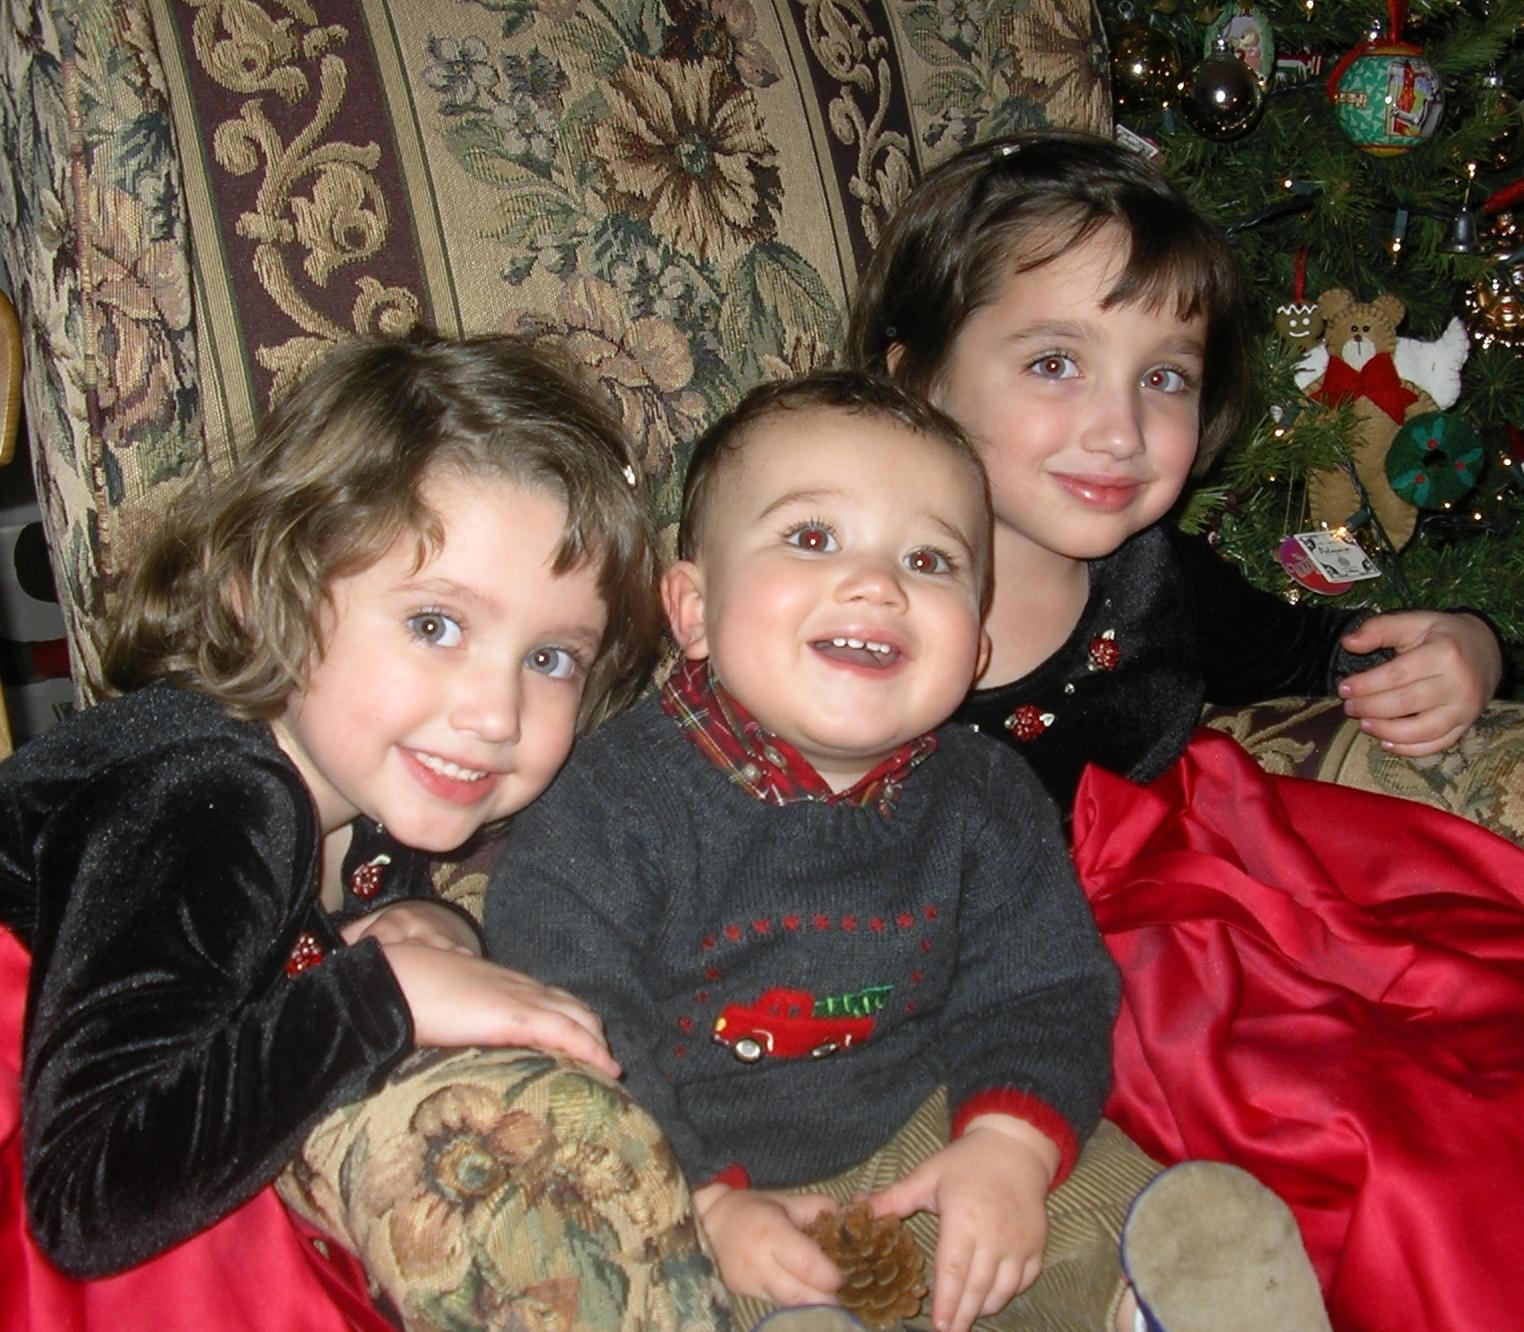 Julia, Ava & William (Michaels children)